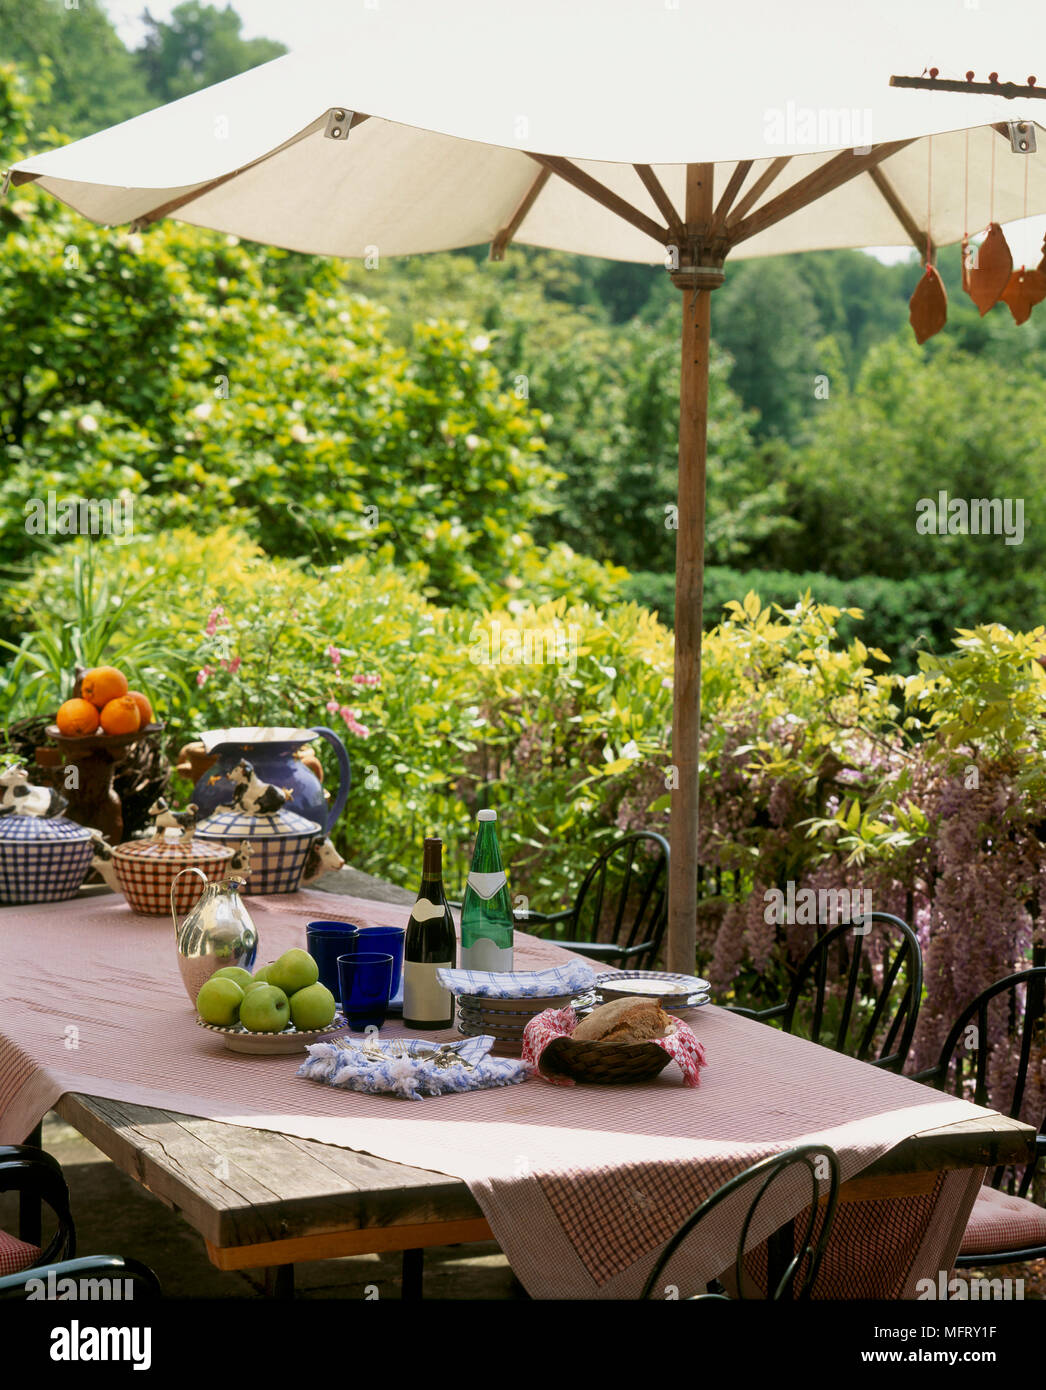 Outdoor wooden table in a garden setting, chairs and parasol, table ...